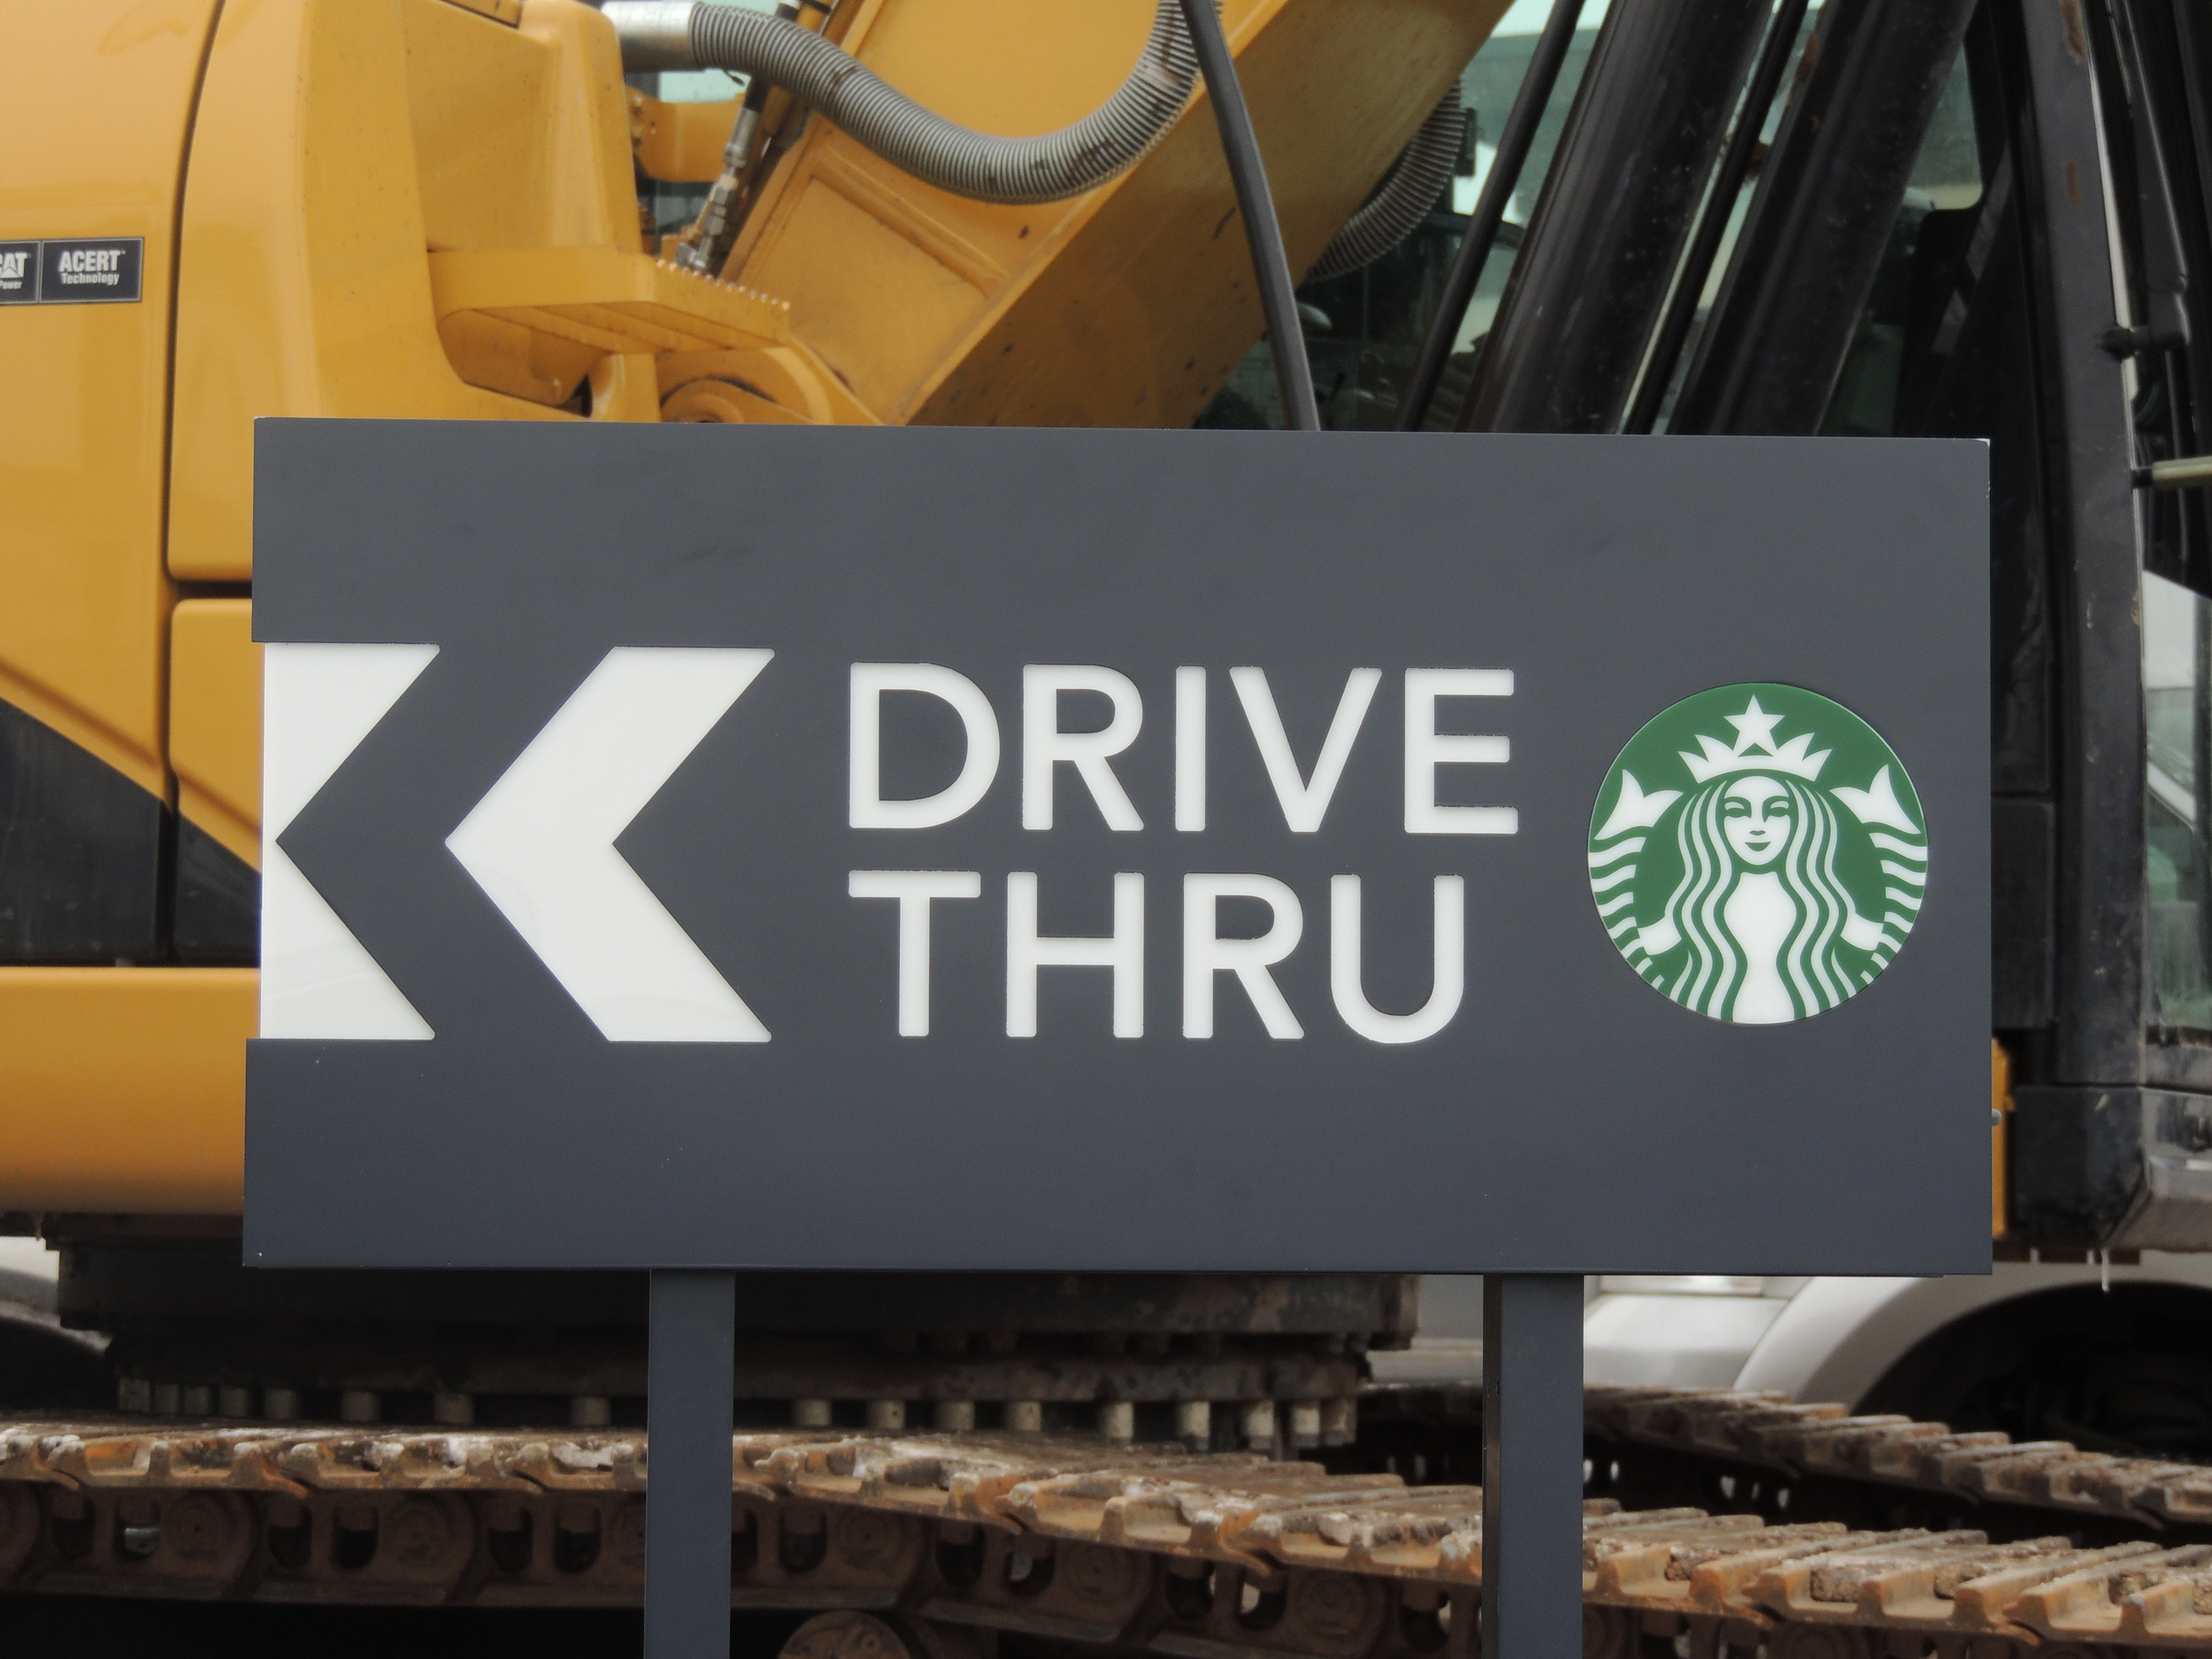 This will be the first Starbucks location in the Duluth area to feature a Drive Thru.